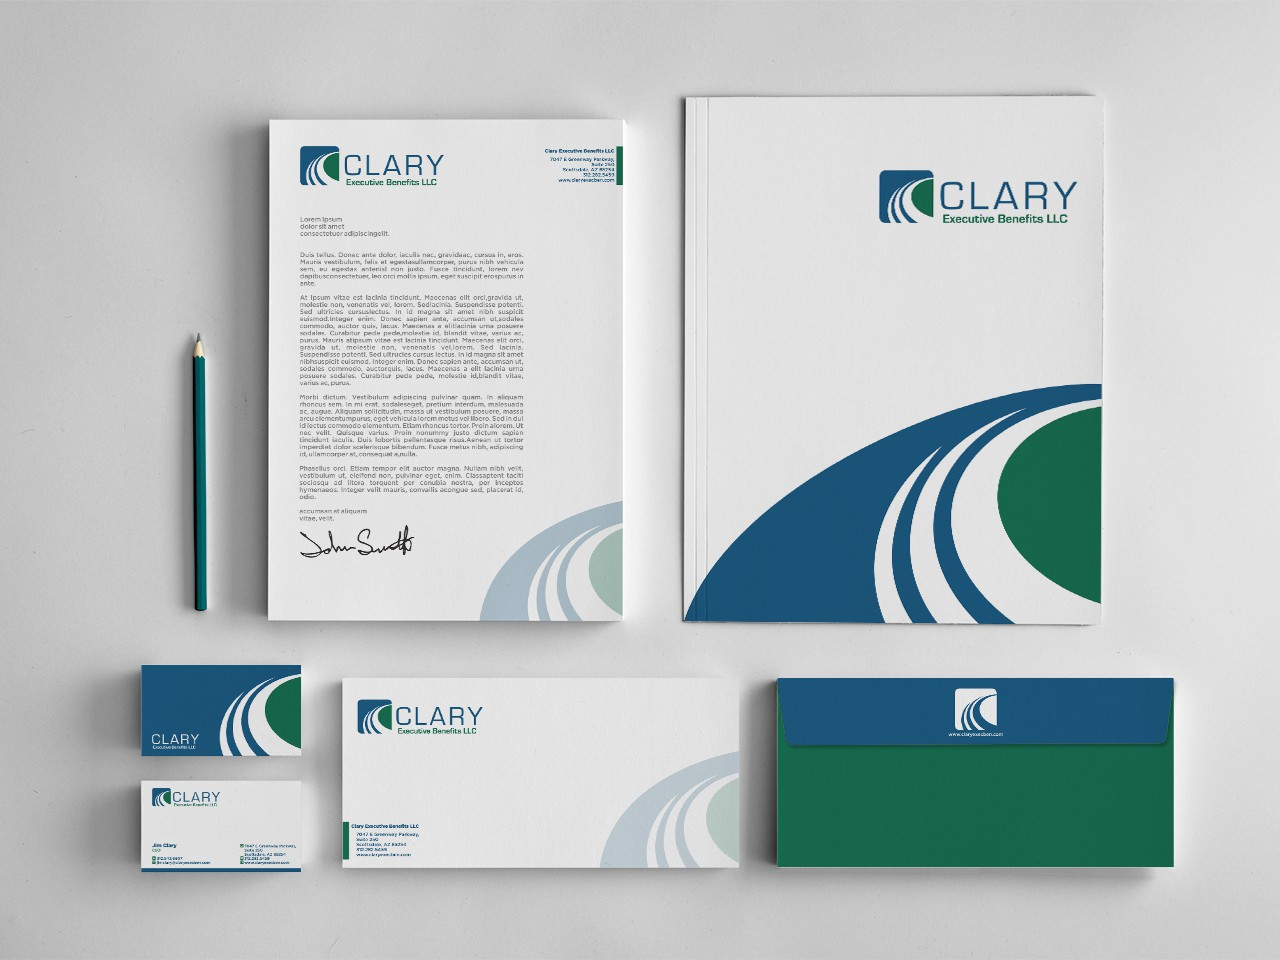 logo and business card for Clary Executive Benefits LLC